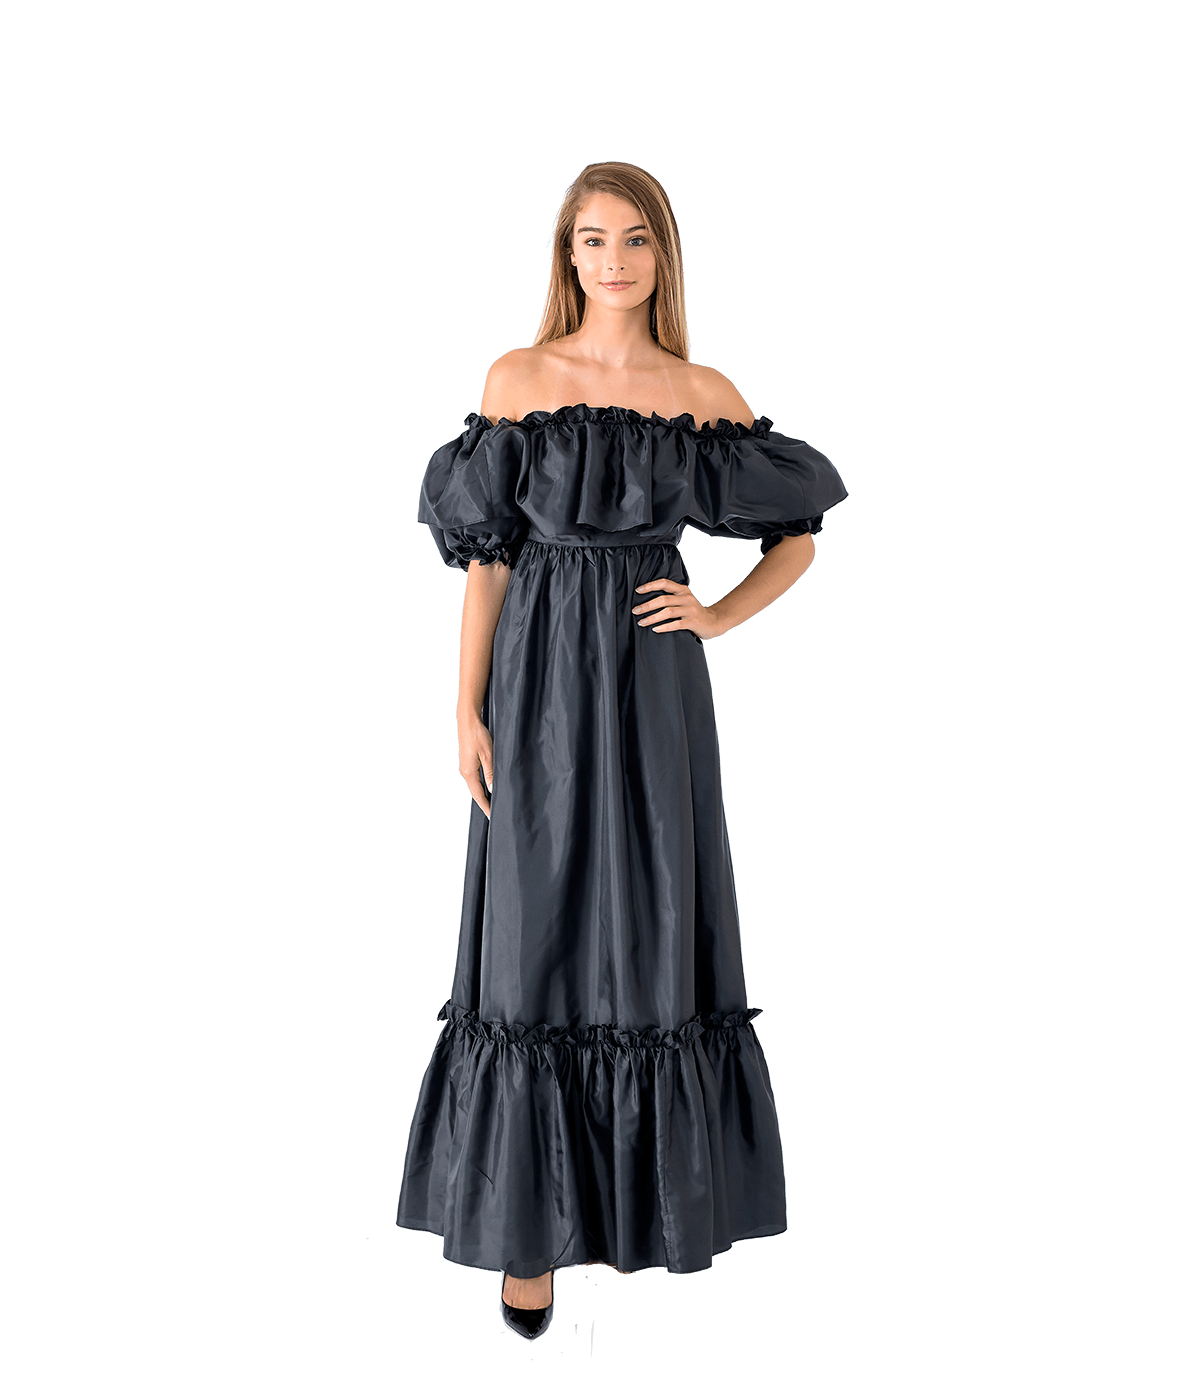 Tara Puff Shoulder Maxi Dress - Lady Jetset